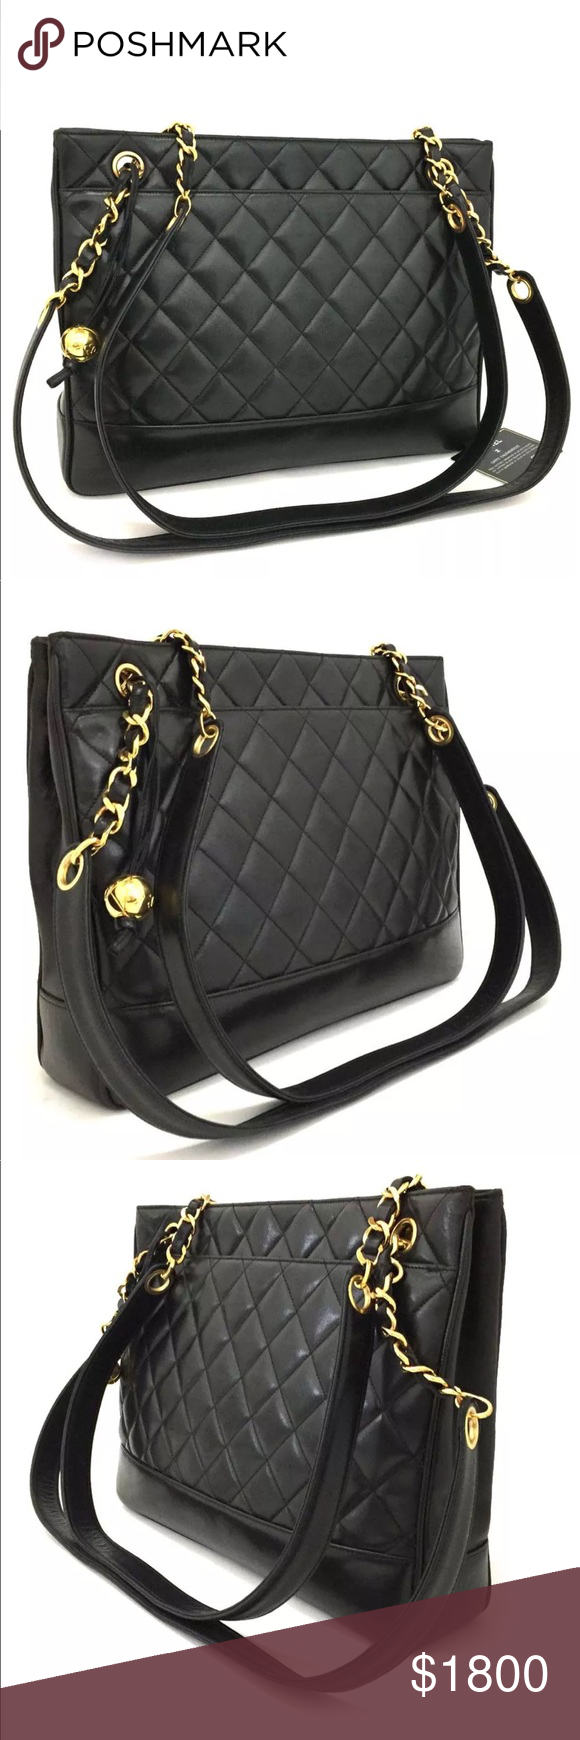 6001cc79796caa Authentic Chanel lambskin shoulder Tote Bag Chanel quilted matelasse  lambskin CC logo chain shoulder tote bag